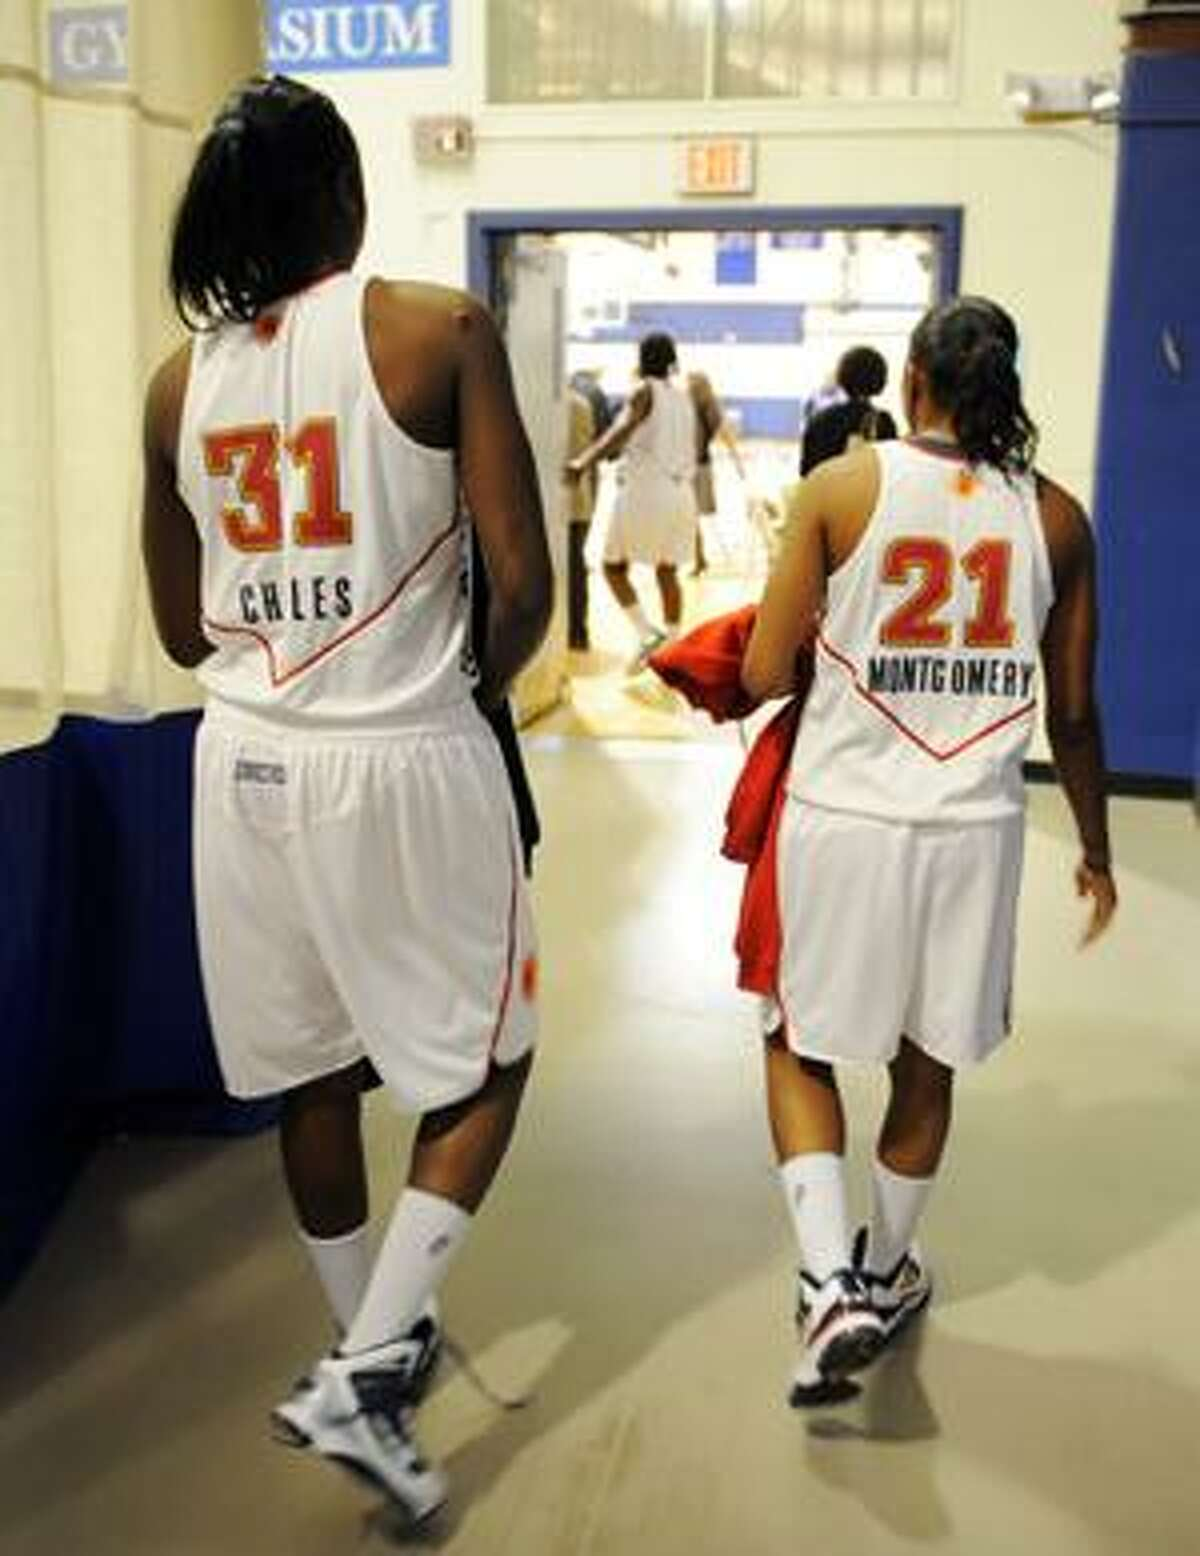 Former University of Connecticut teammates Tina Charles, left, and Renee Montgomery arrive for the opening of training camp for the 2010 Connecticut Sun season on Monday, April 26, 2010 in New London, Conn. (AP Photo/The Day, Sean D. Elliot)